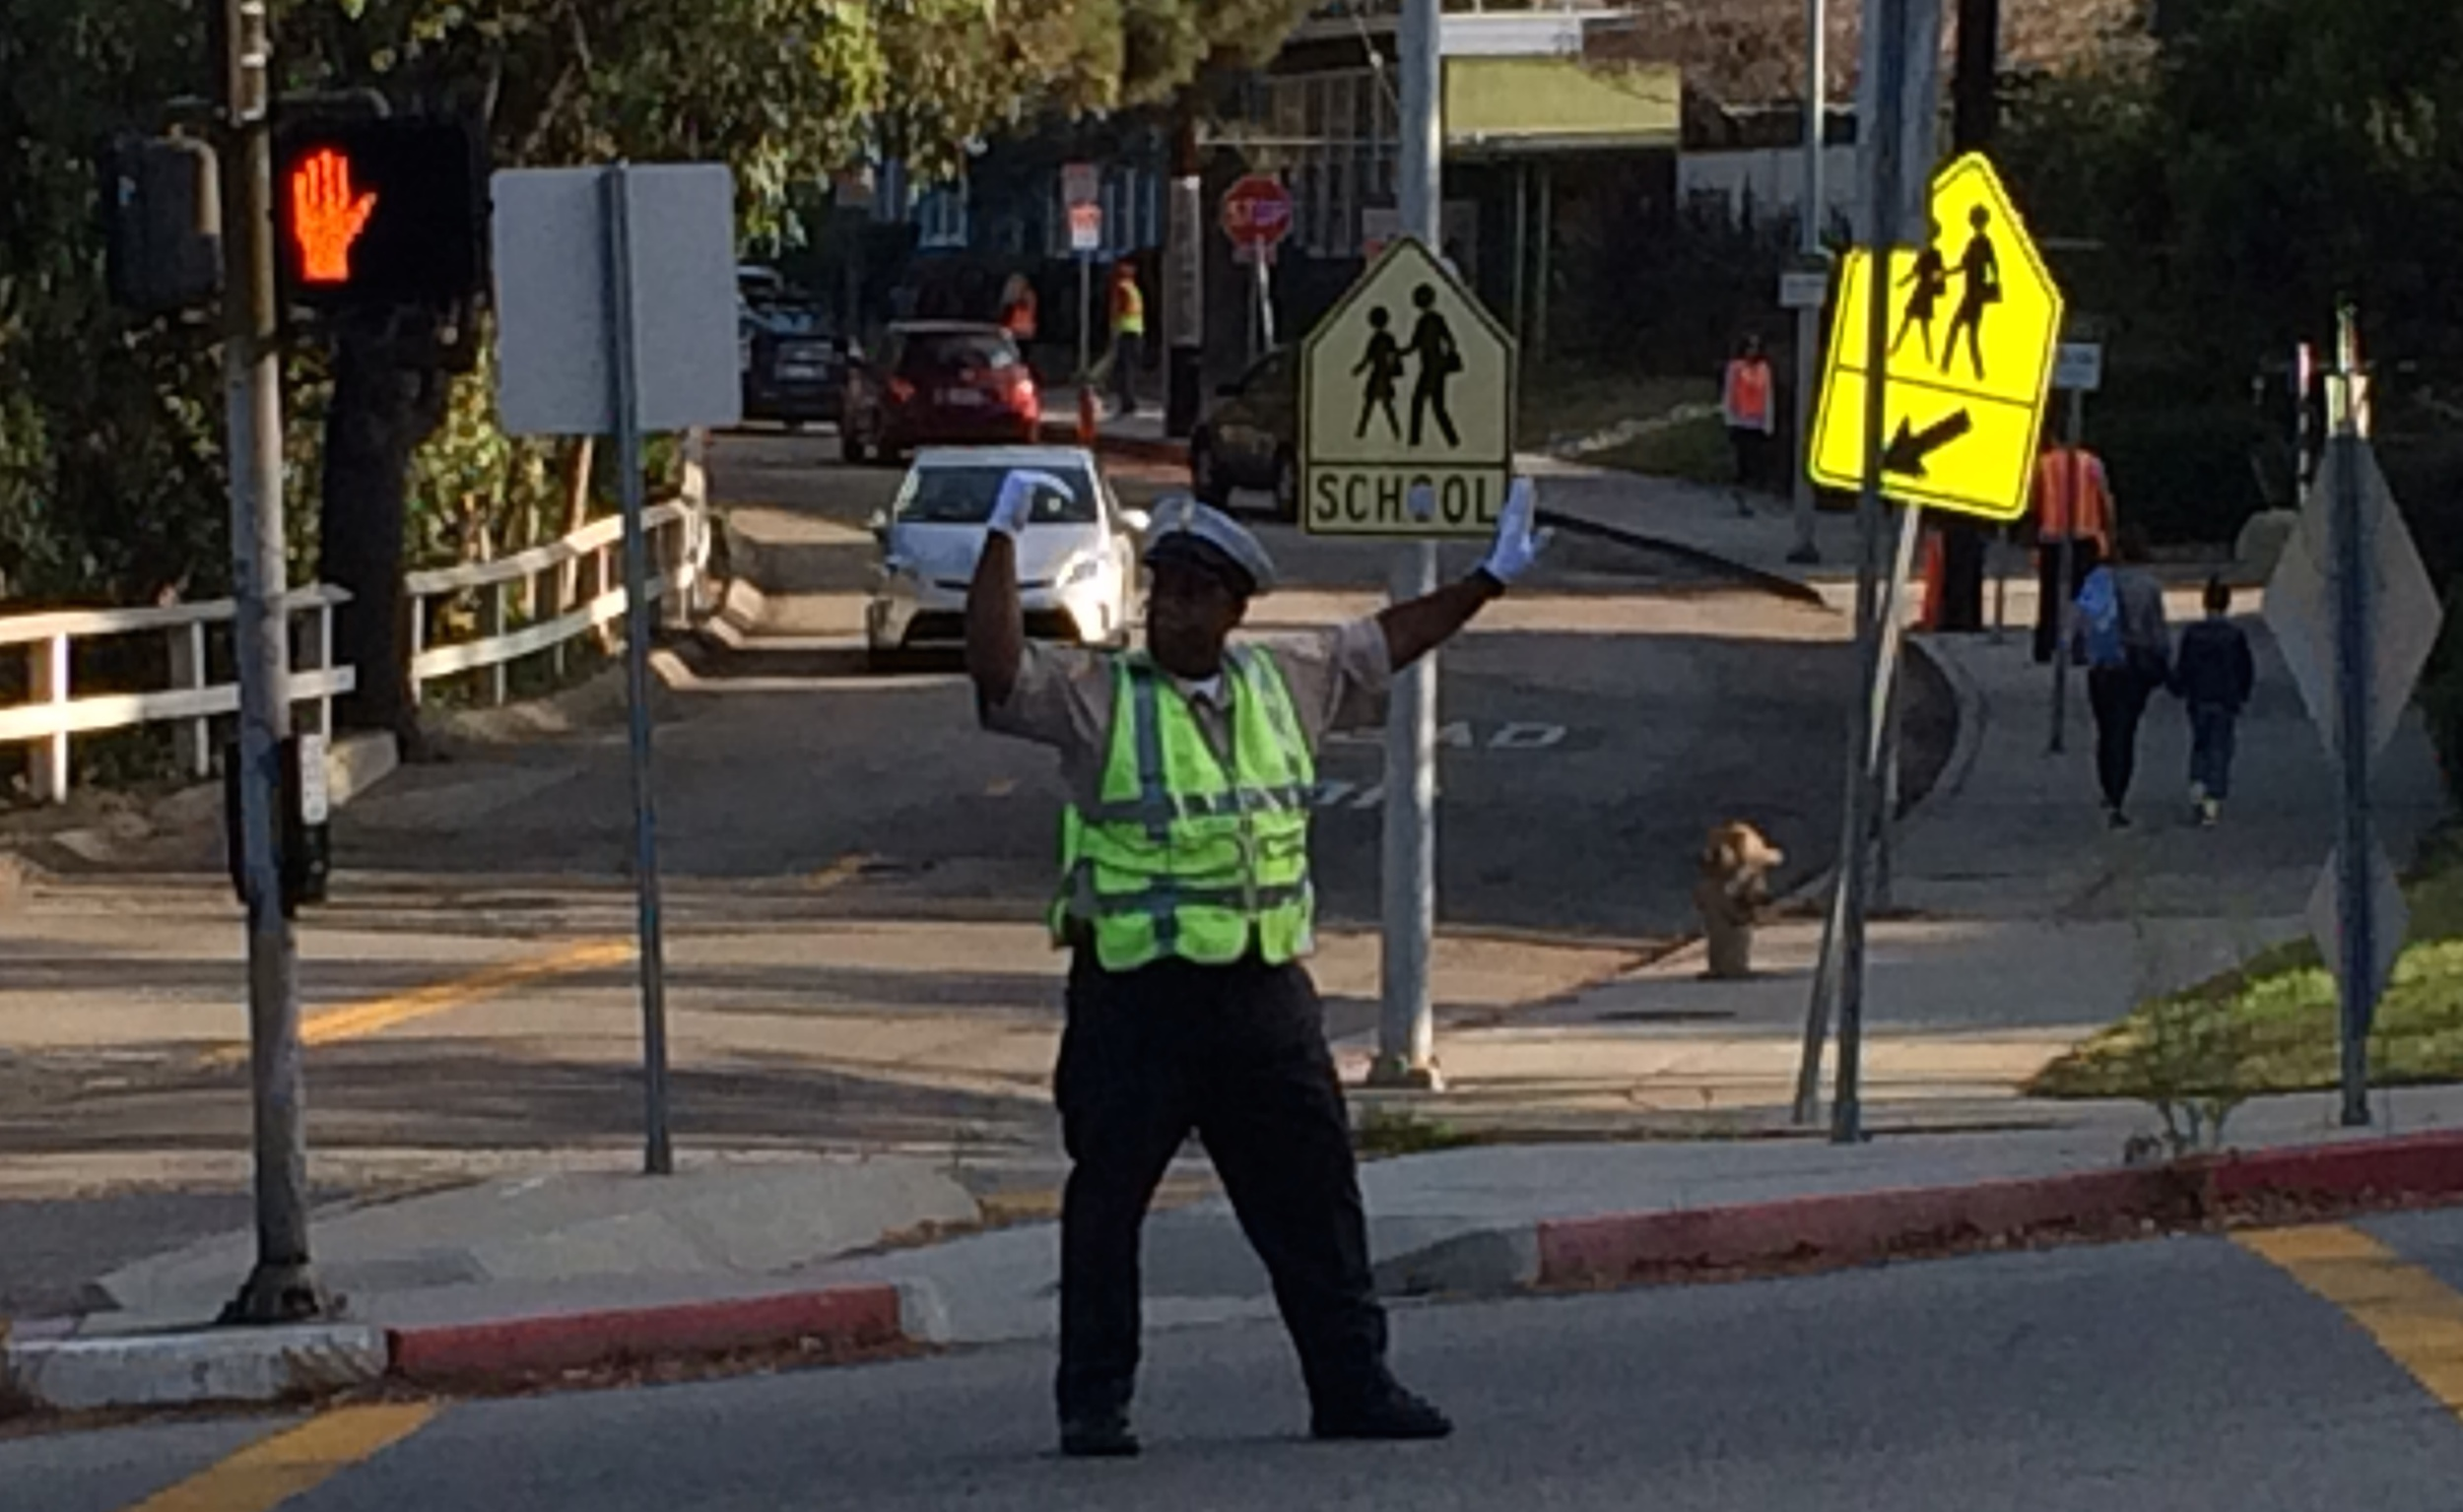 LADOT has now been able to extend the presence of an officer for another 3 weeks, till September 15